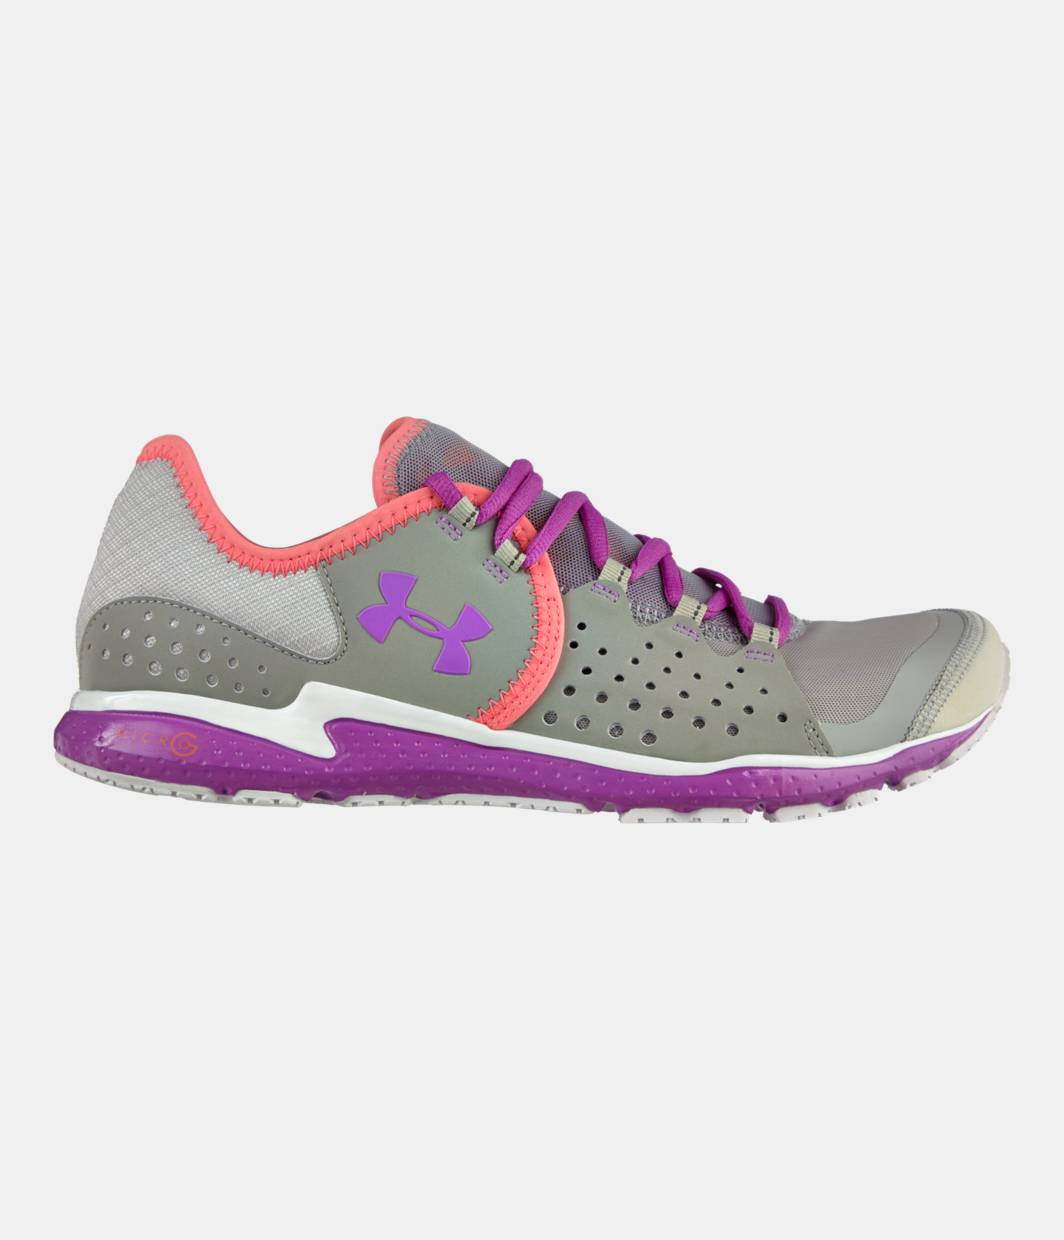 Model Details About Women39s Under Armour Micro G Monza Night Running Shoe